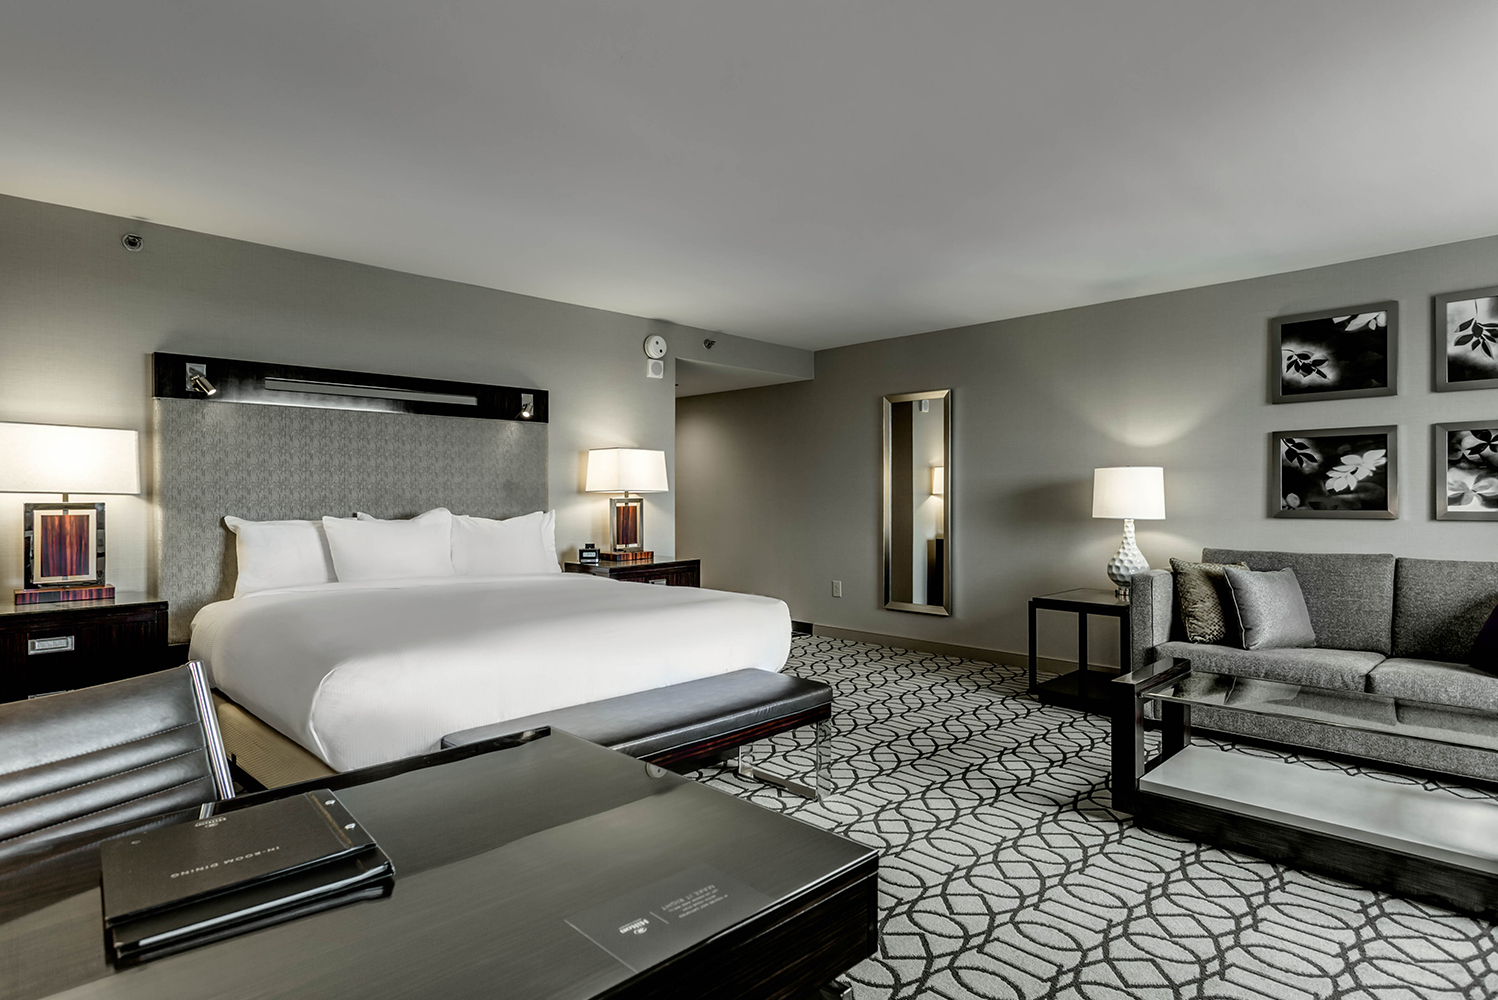 The property completed a $14 million interior guestroom redesign in 2016.